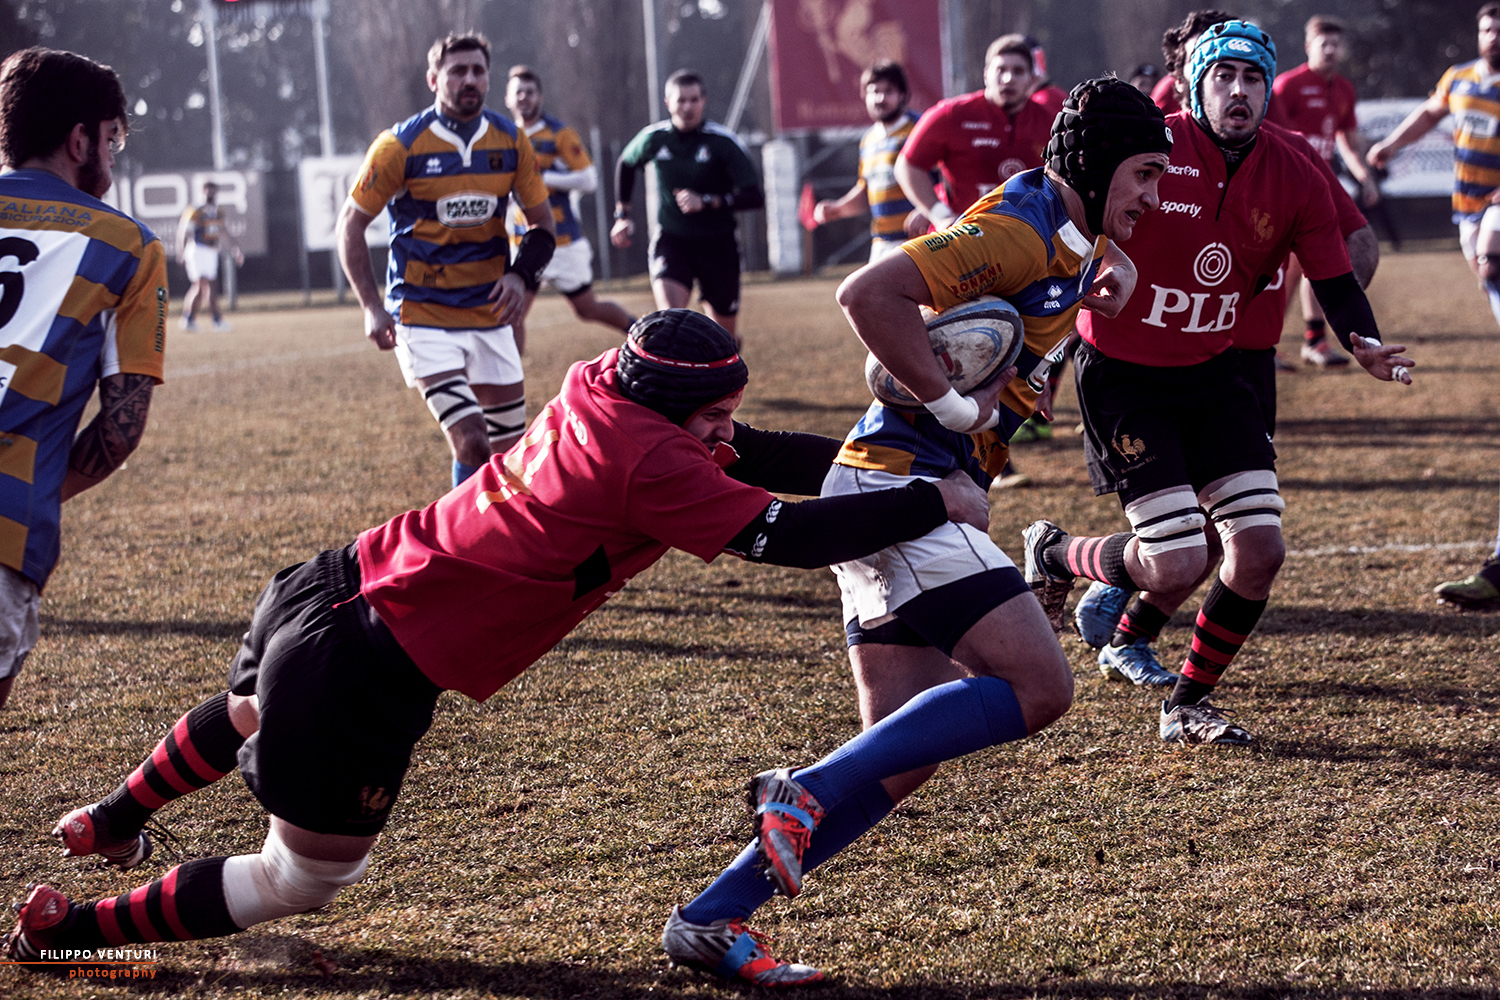 romagna_rugby_parma_02.jpg